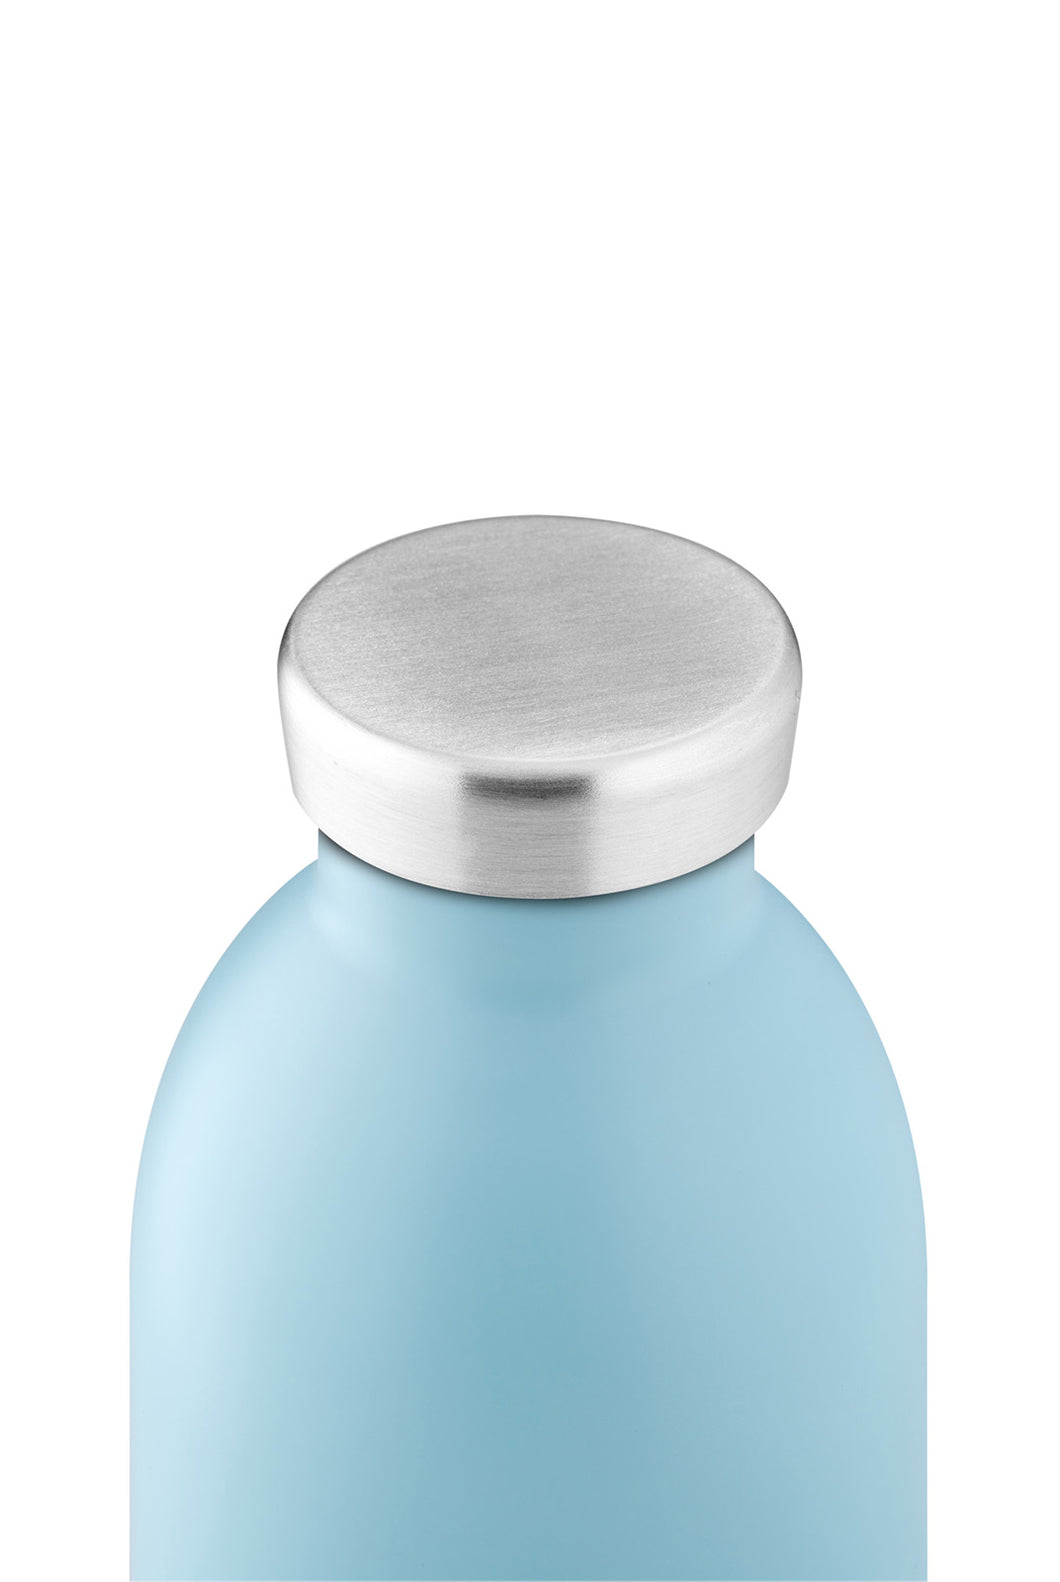 24Bottles - Pastel Collection - Clima Bottle - Stainless Steel Drink Bottle - 500ml - Cloud Blue